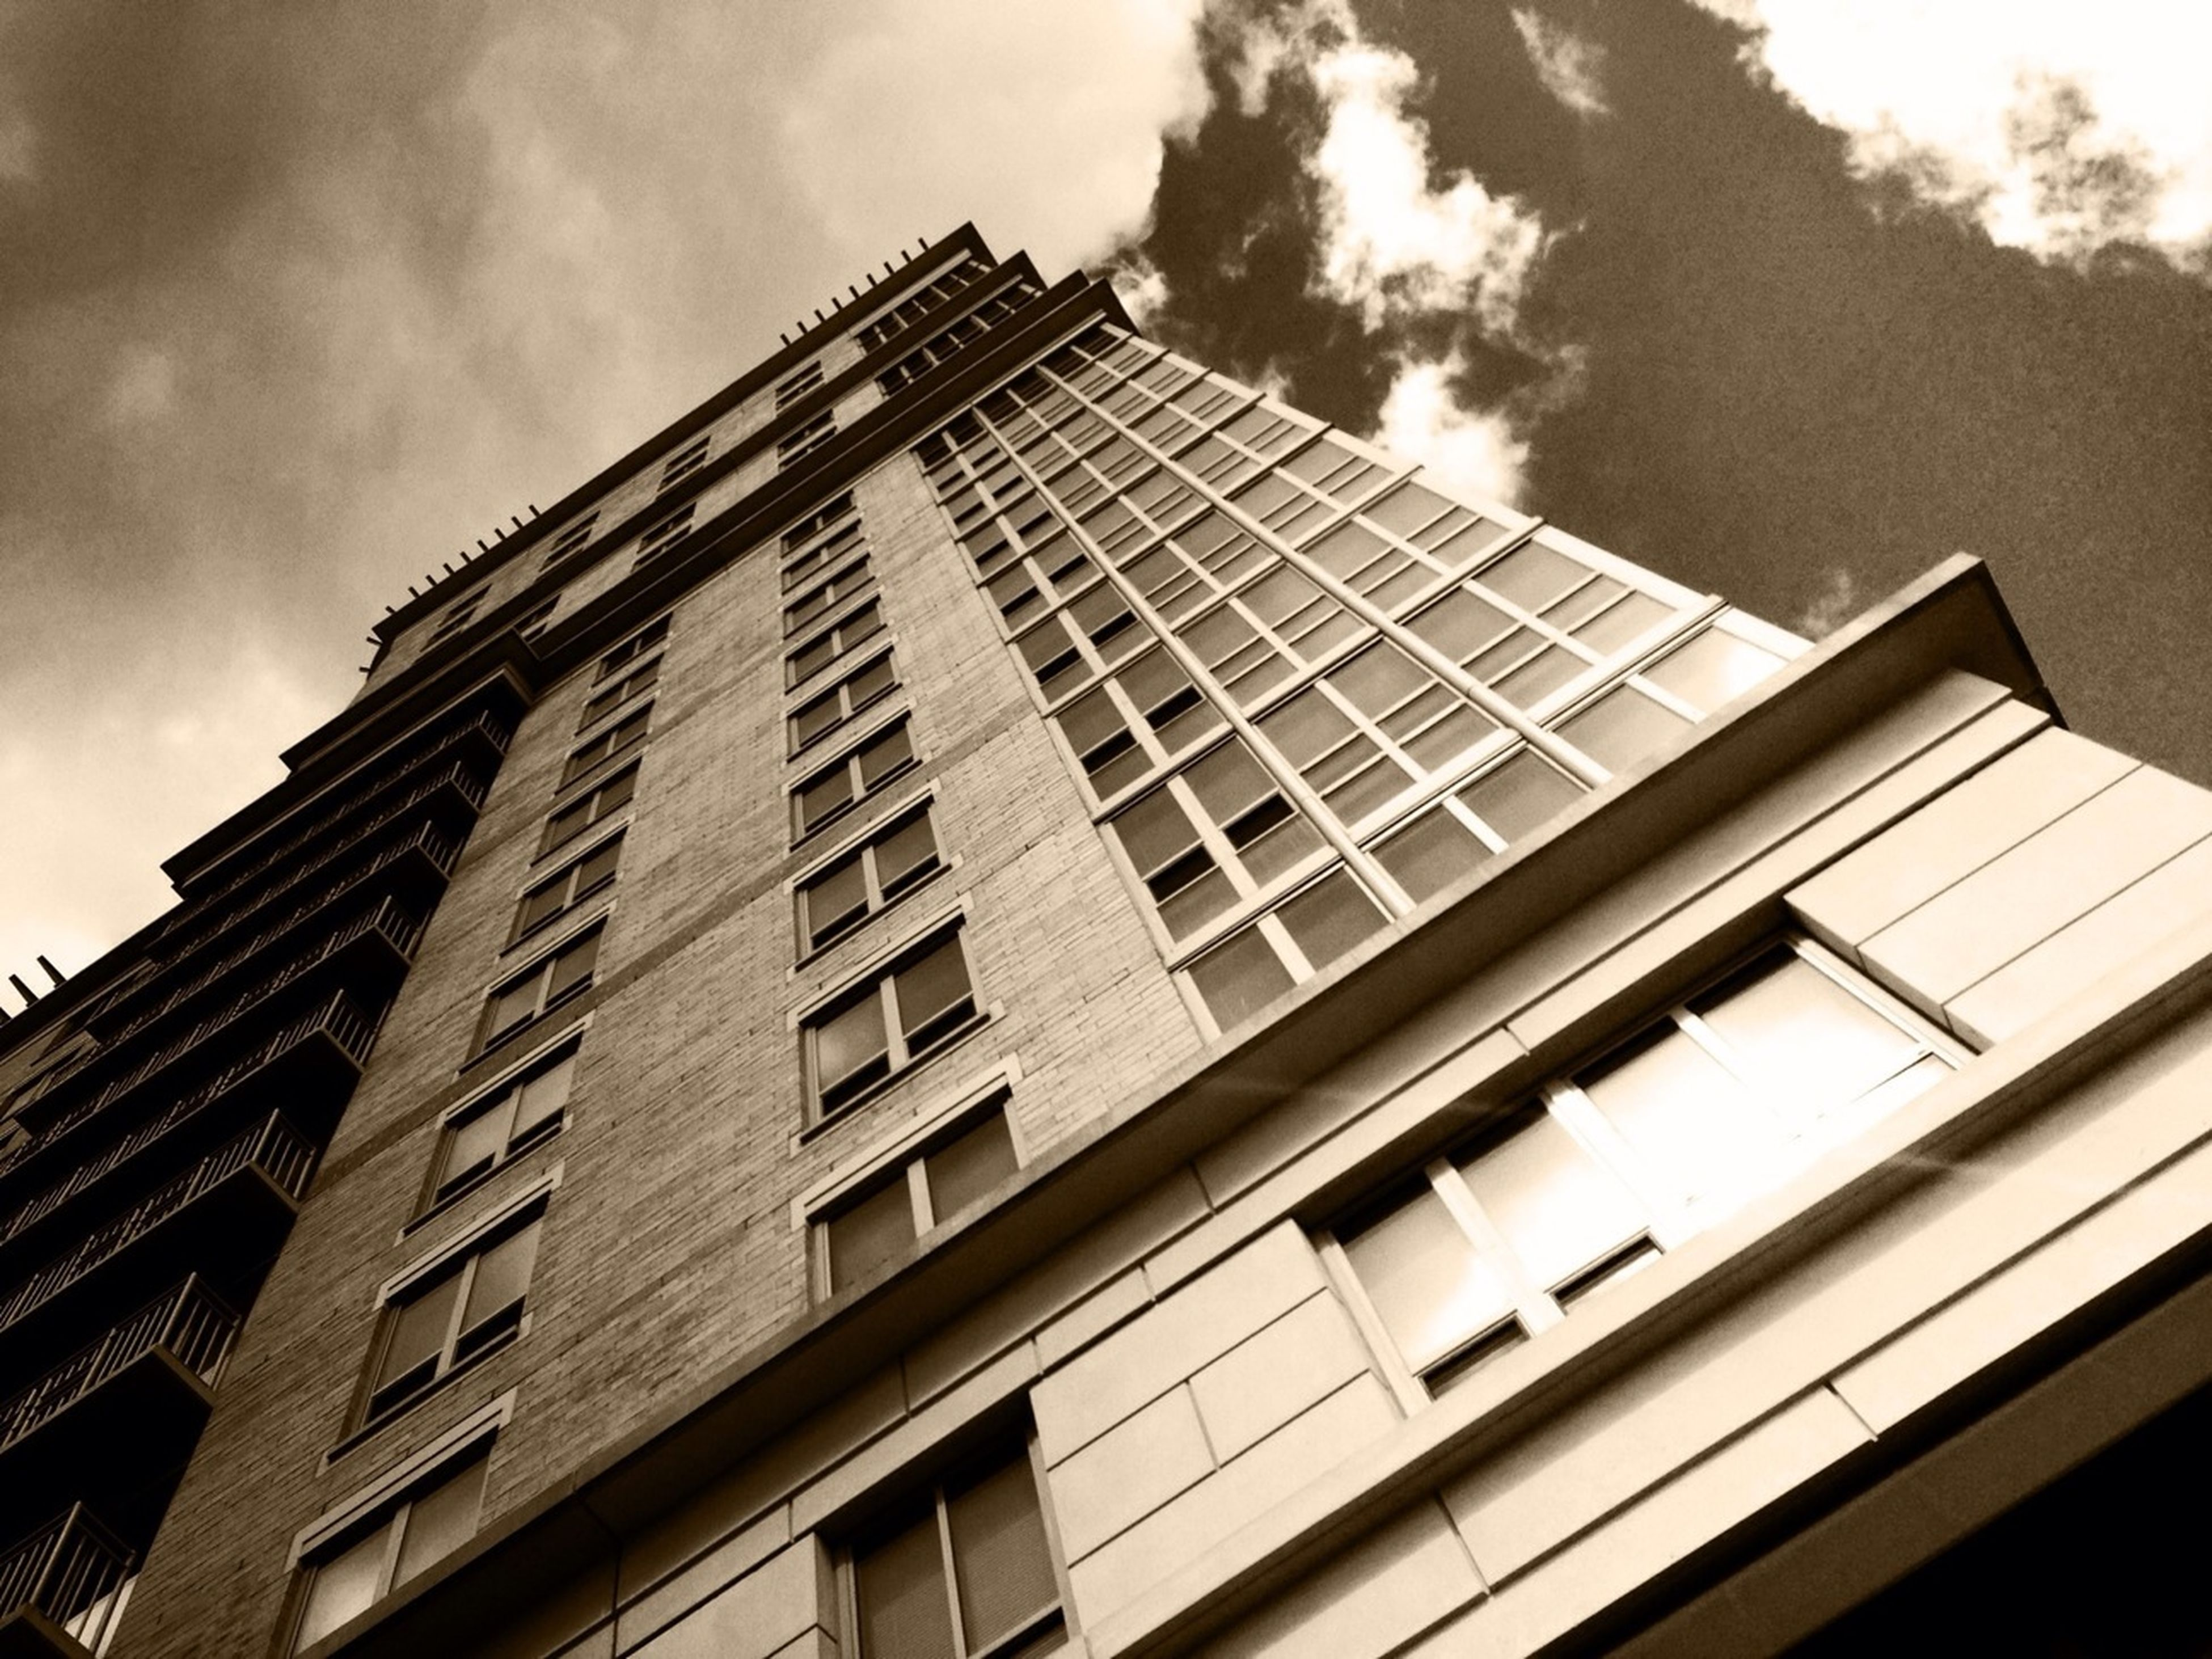 architecture, low angle view, built structure, building exterior, window, sky, building, glass - material, cloud - sky, city, modern, reflection, cloud, cloudy, day, residential building, office building, no people, balcony, outdoors